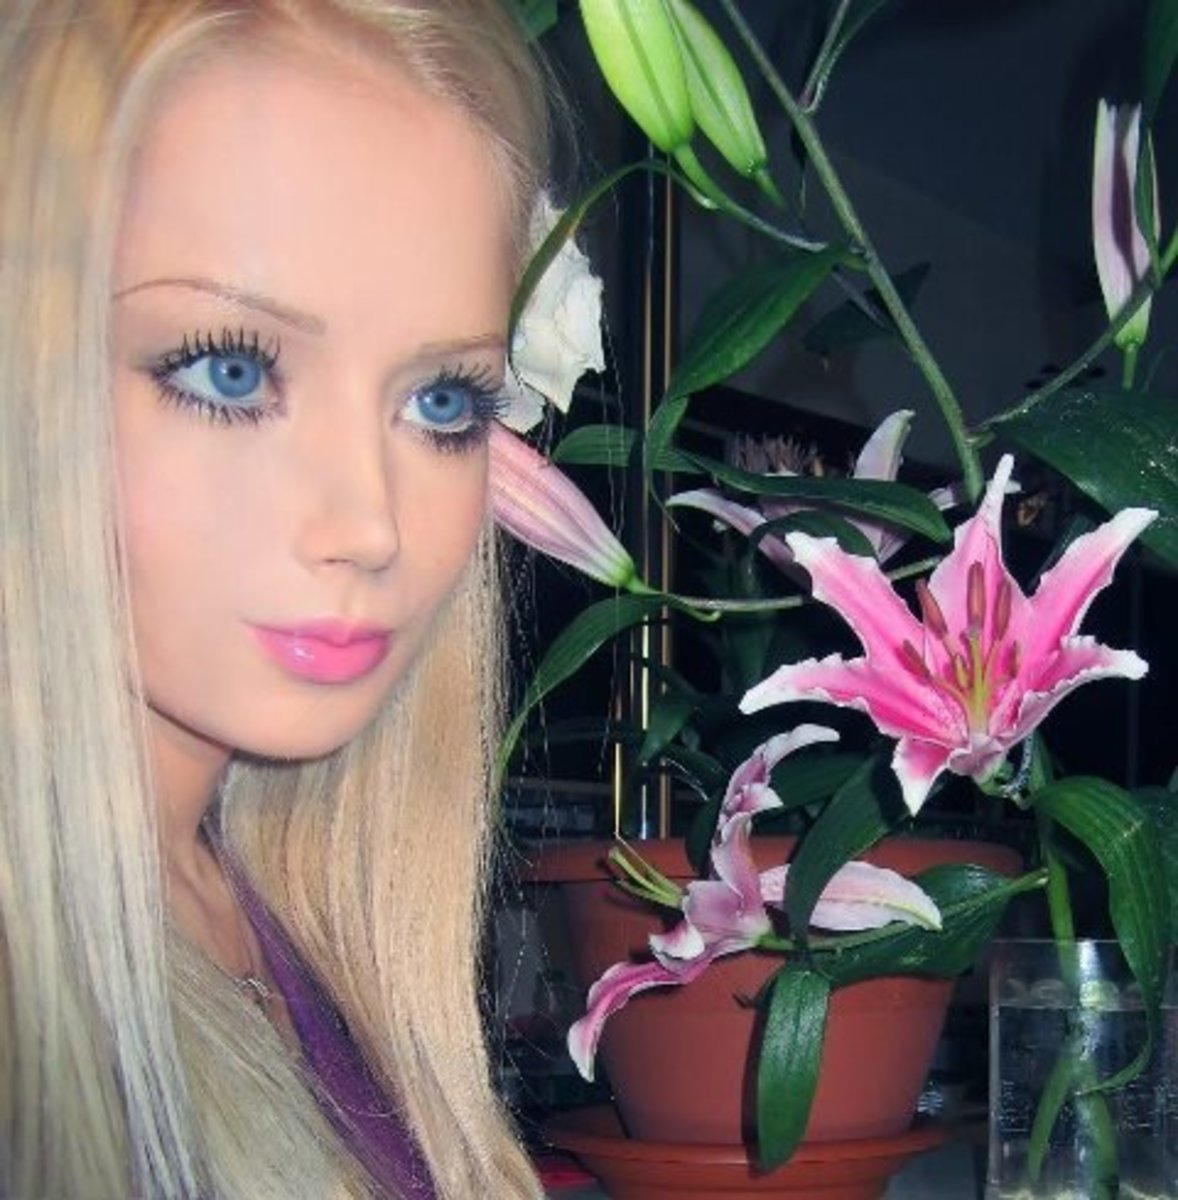 Extreme Plastic Surgery. The Human Barbie